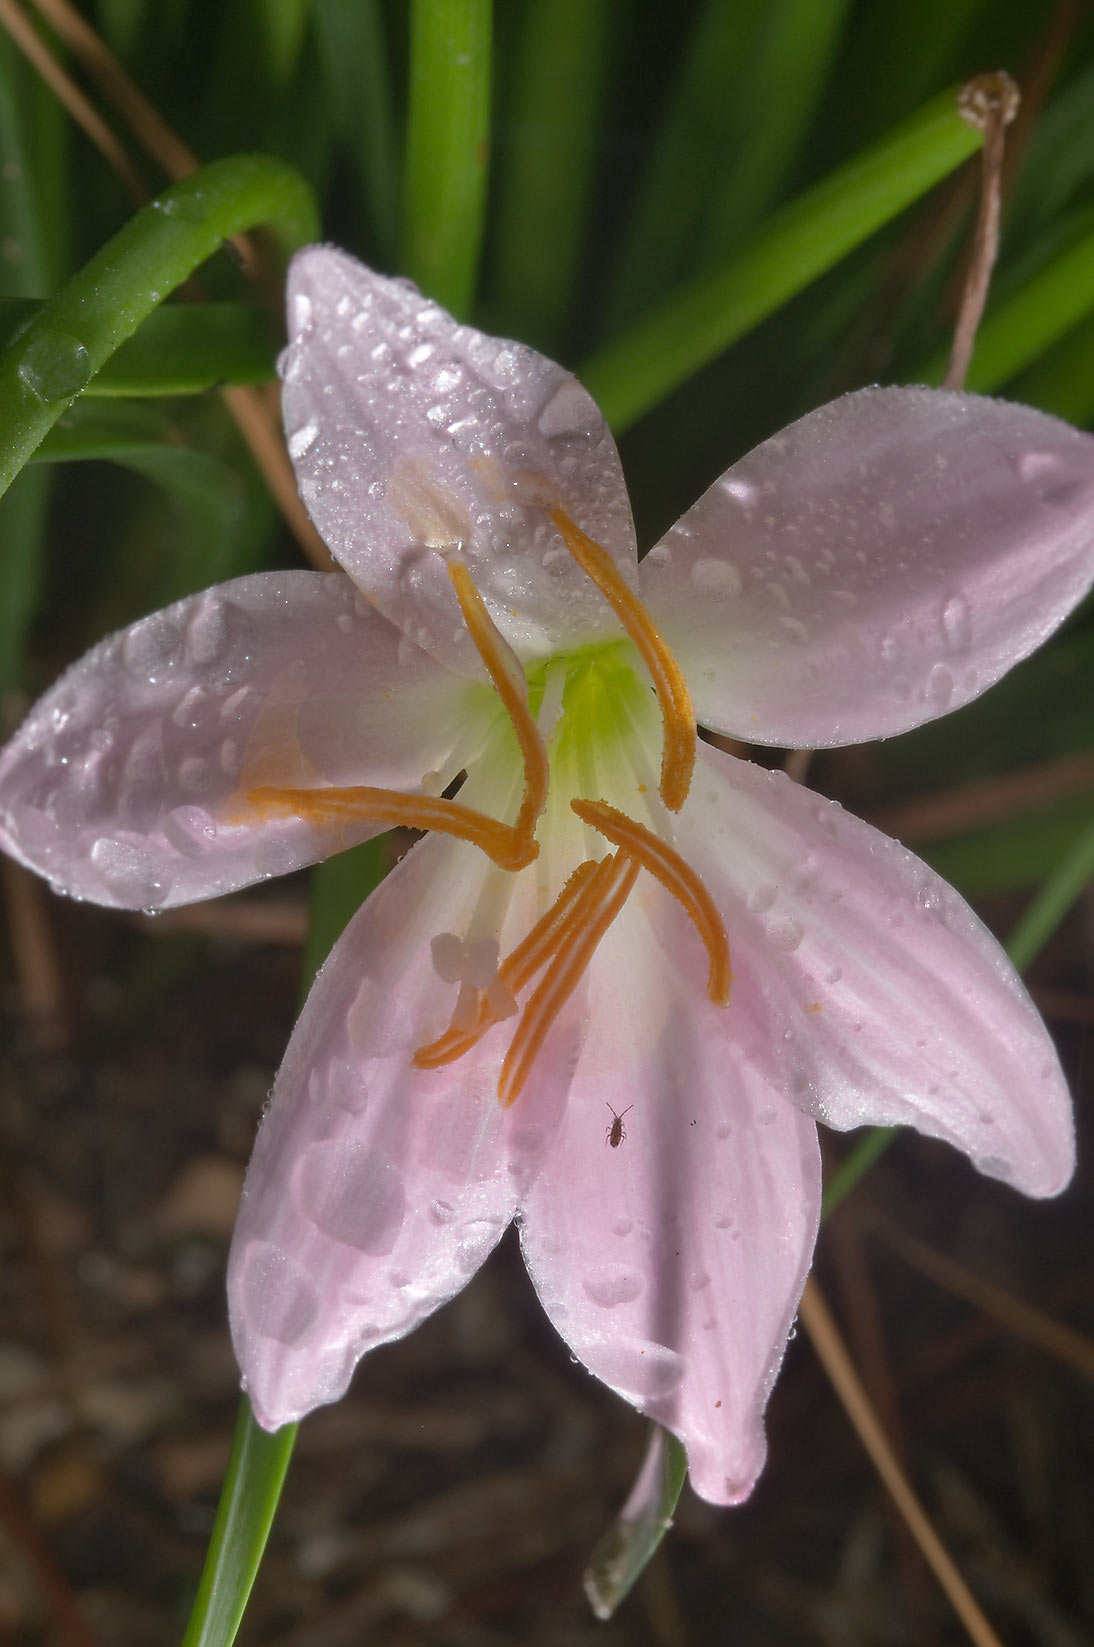 Rain lily (Zephyranthes) in Mercer Arboretum and...Gardens. Humble (Houston area), Texas